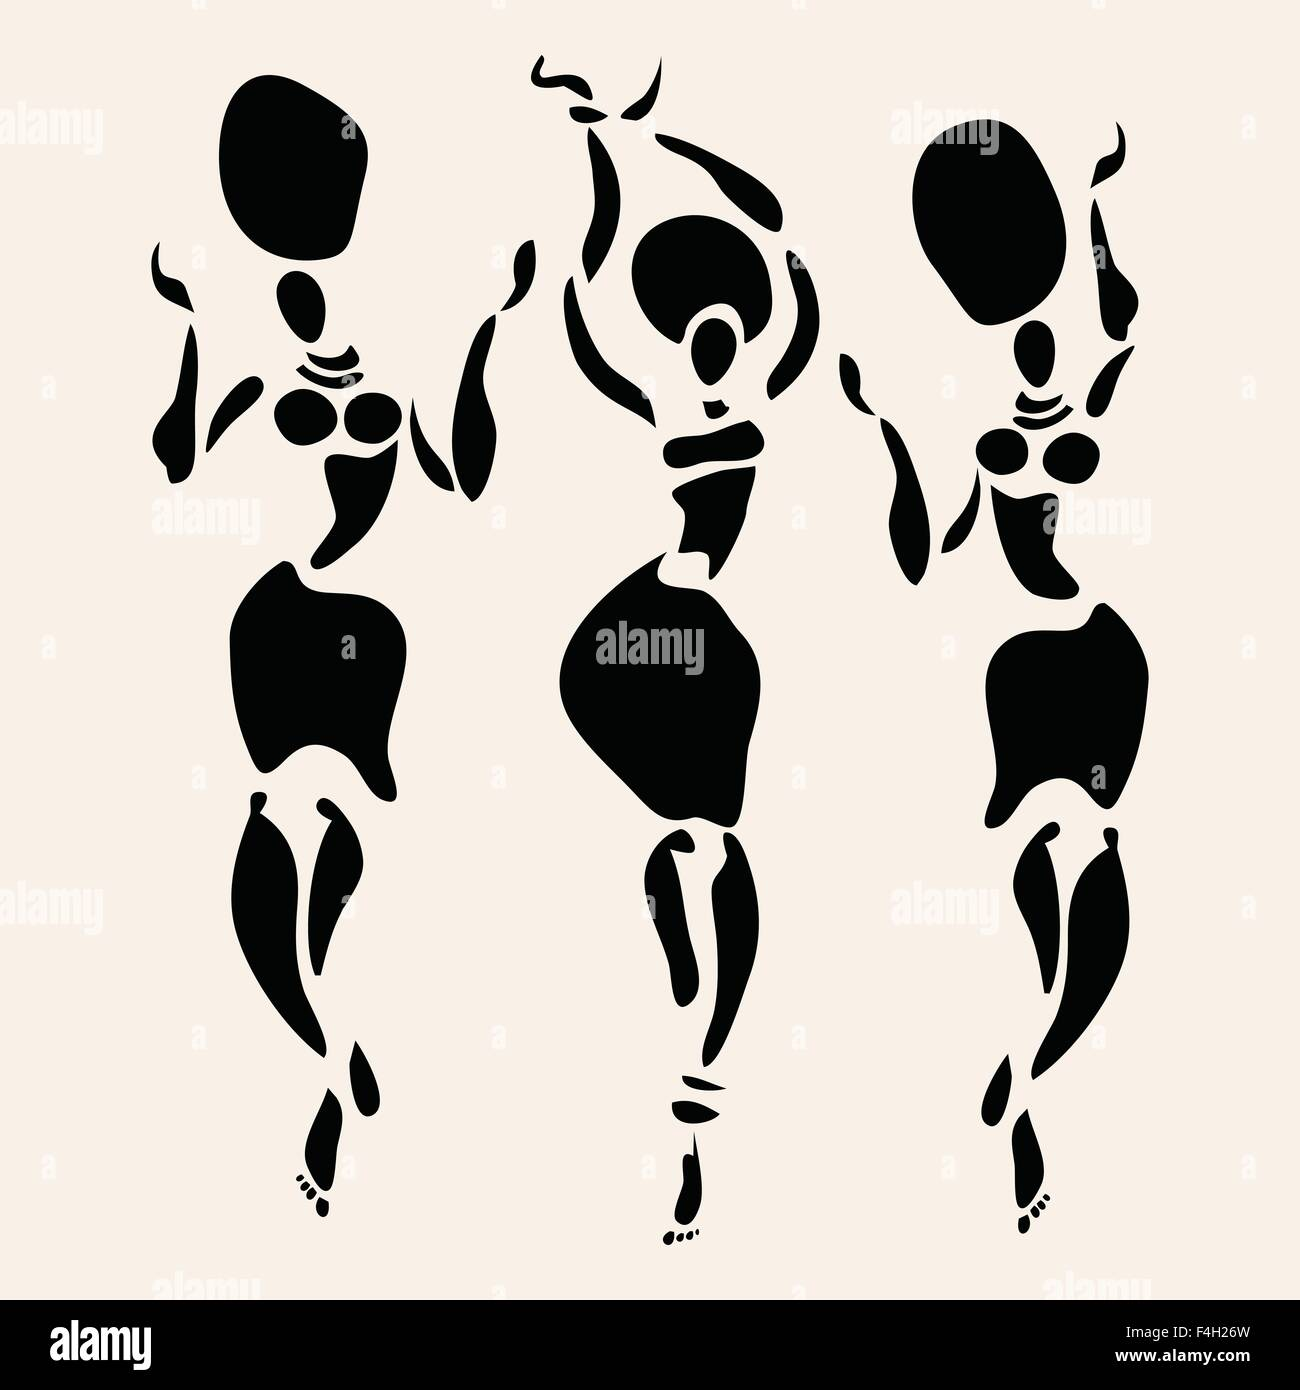 African silhouette set Stock Vector Art & Illustration ...